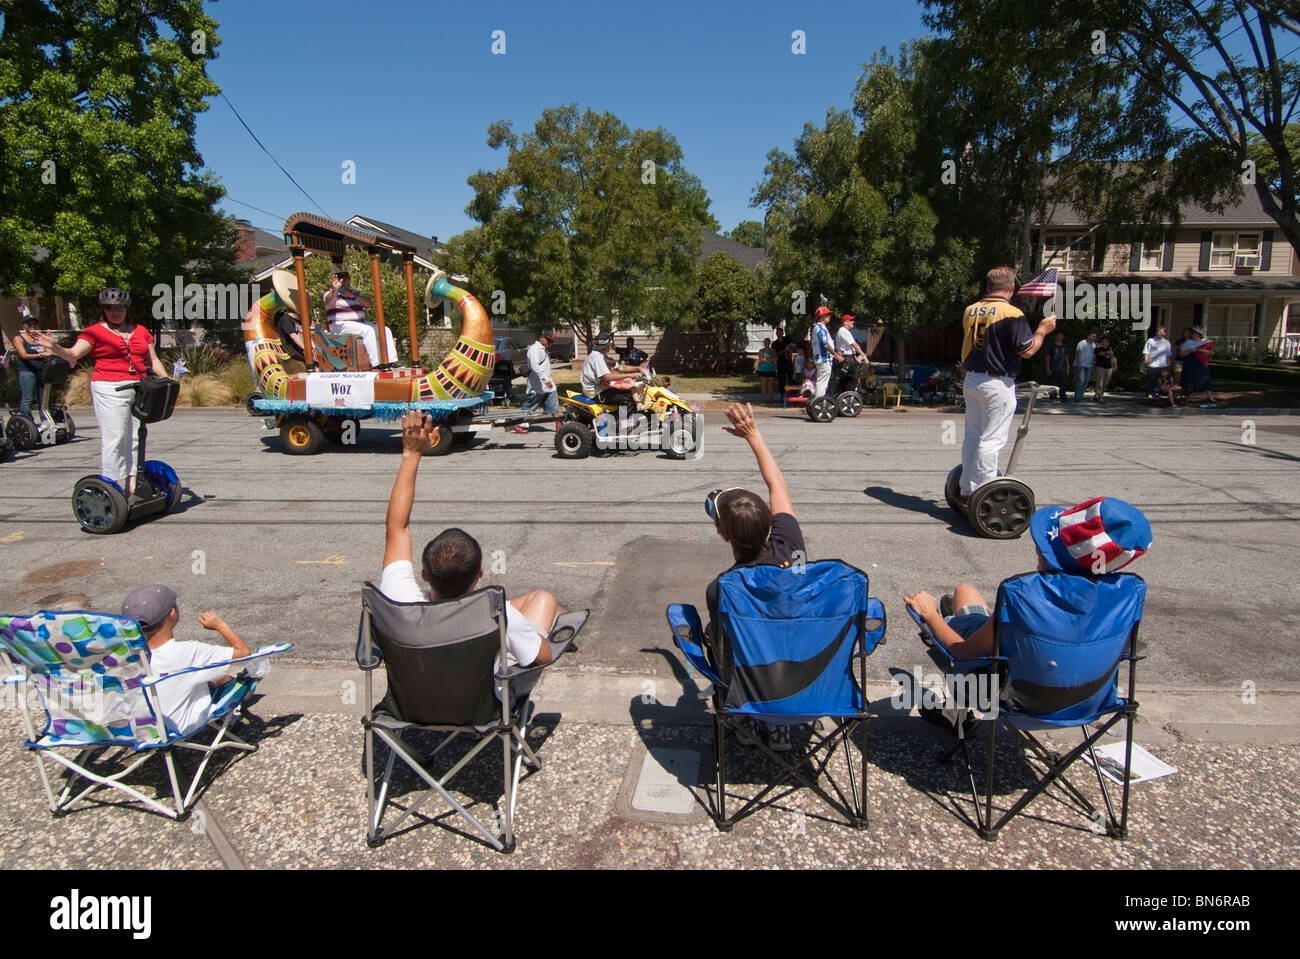 Spectators wave to Steve Wozniak as he and his posse on Segways pass during a 4th of July Parade in San Jose, CA. - Stock Image